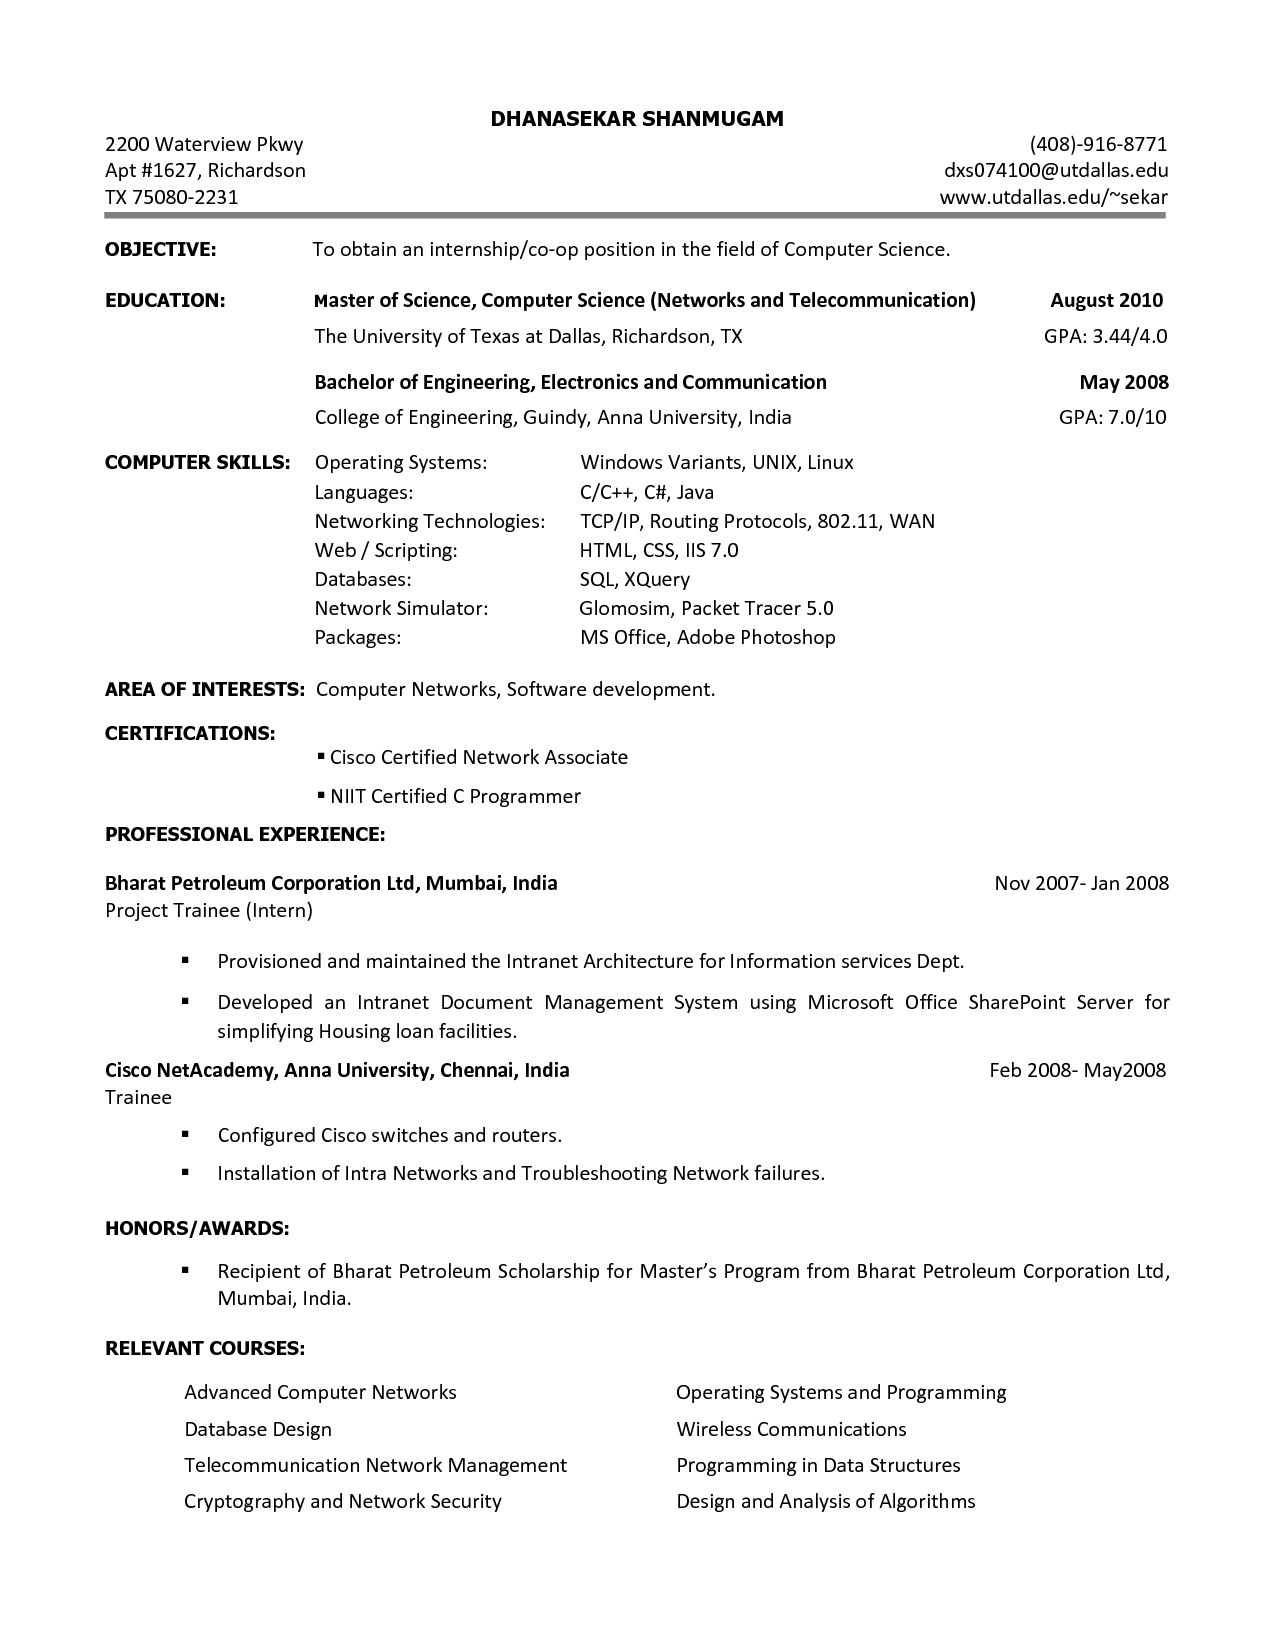 Computer Science Student Resume Pinlirik_Pas On Your Essay  Pinterest  Food Science